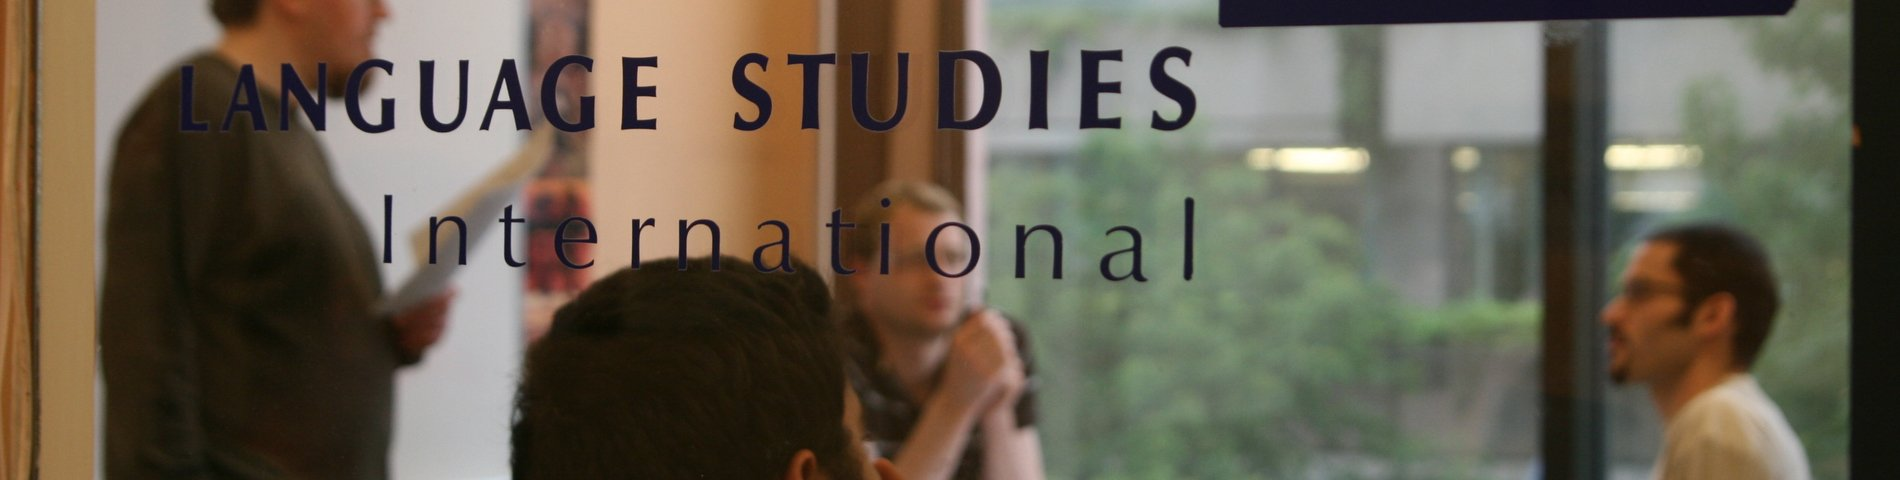 LSI - Language Studies International صورة 1